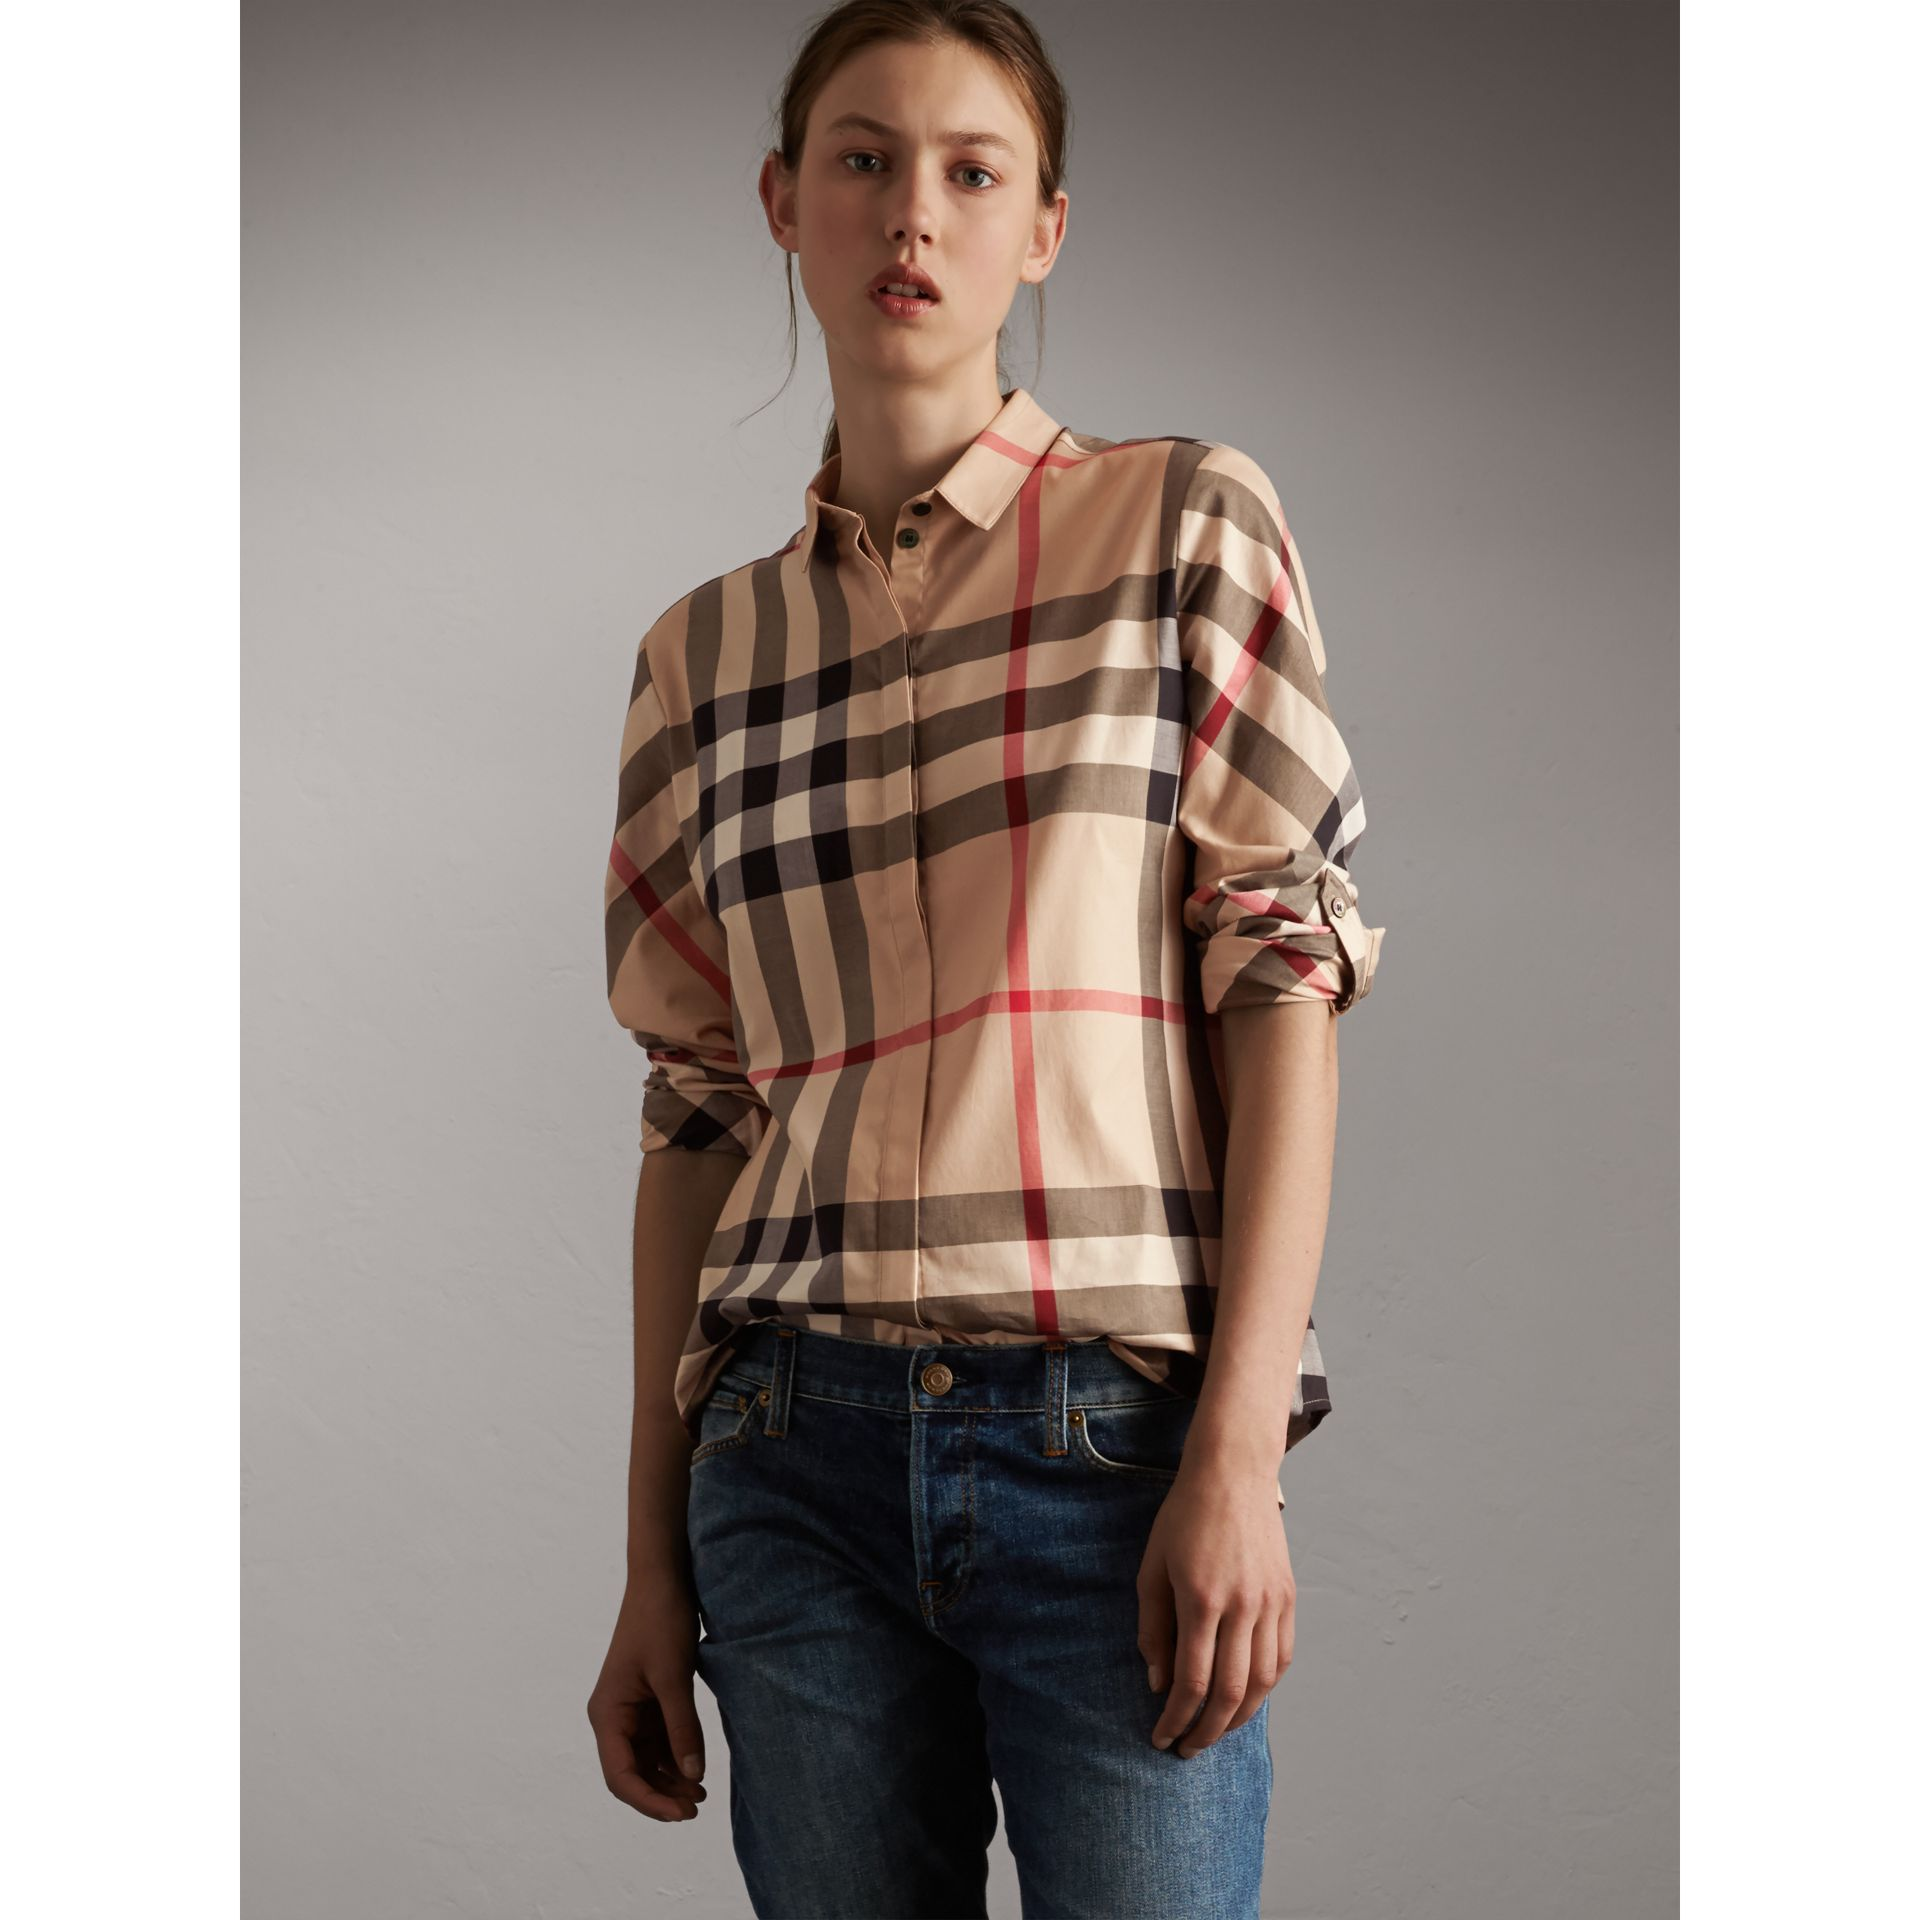 Bluse aus Stretchbaumwolle in Check (New Classic) - Damen | Burberry - Galerie-Bild 1